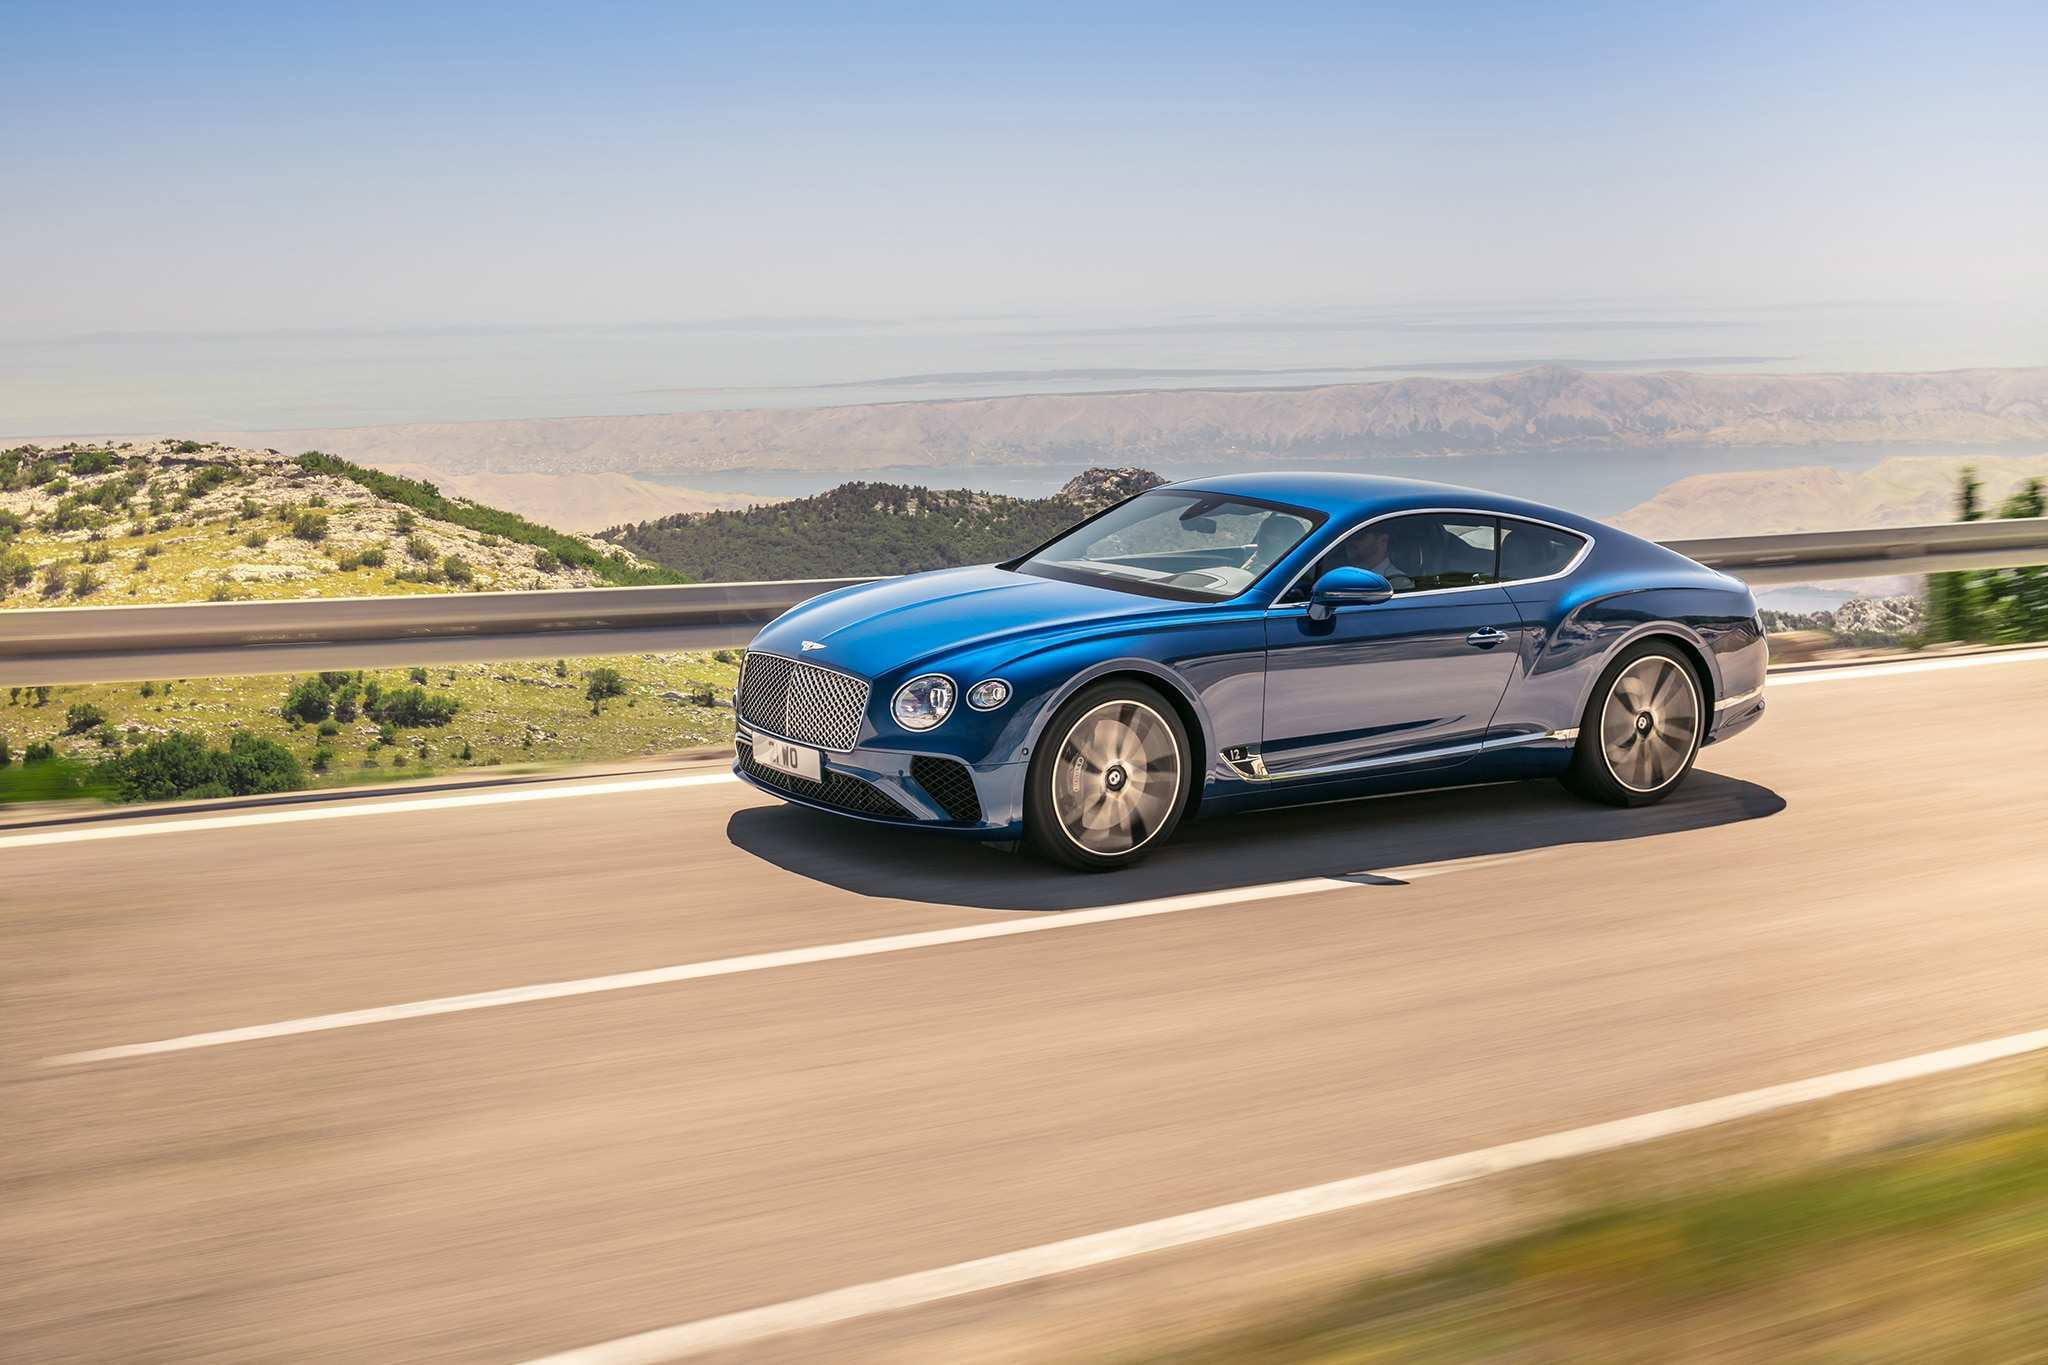 81 Concept of 2019 Bentley Continental Gt Release Date Performance for 2019 Bentley Continental Gt Release Date